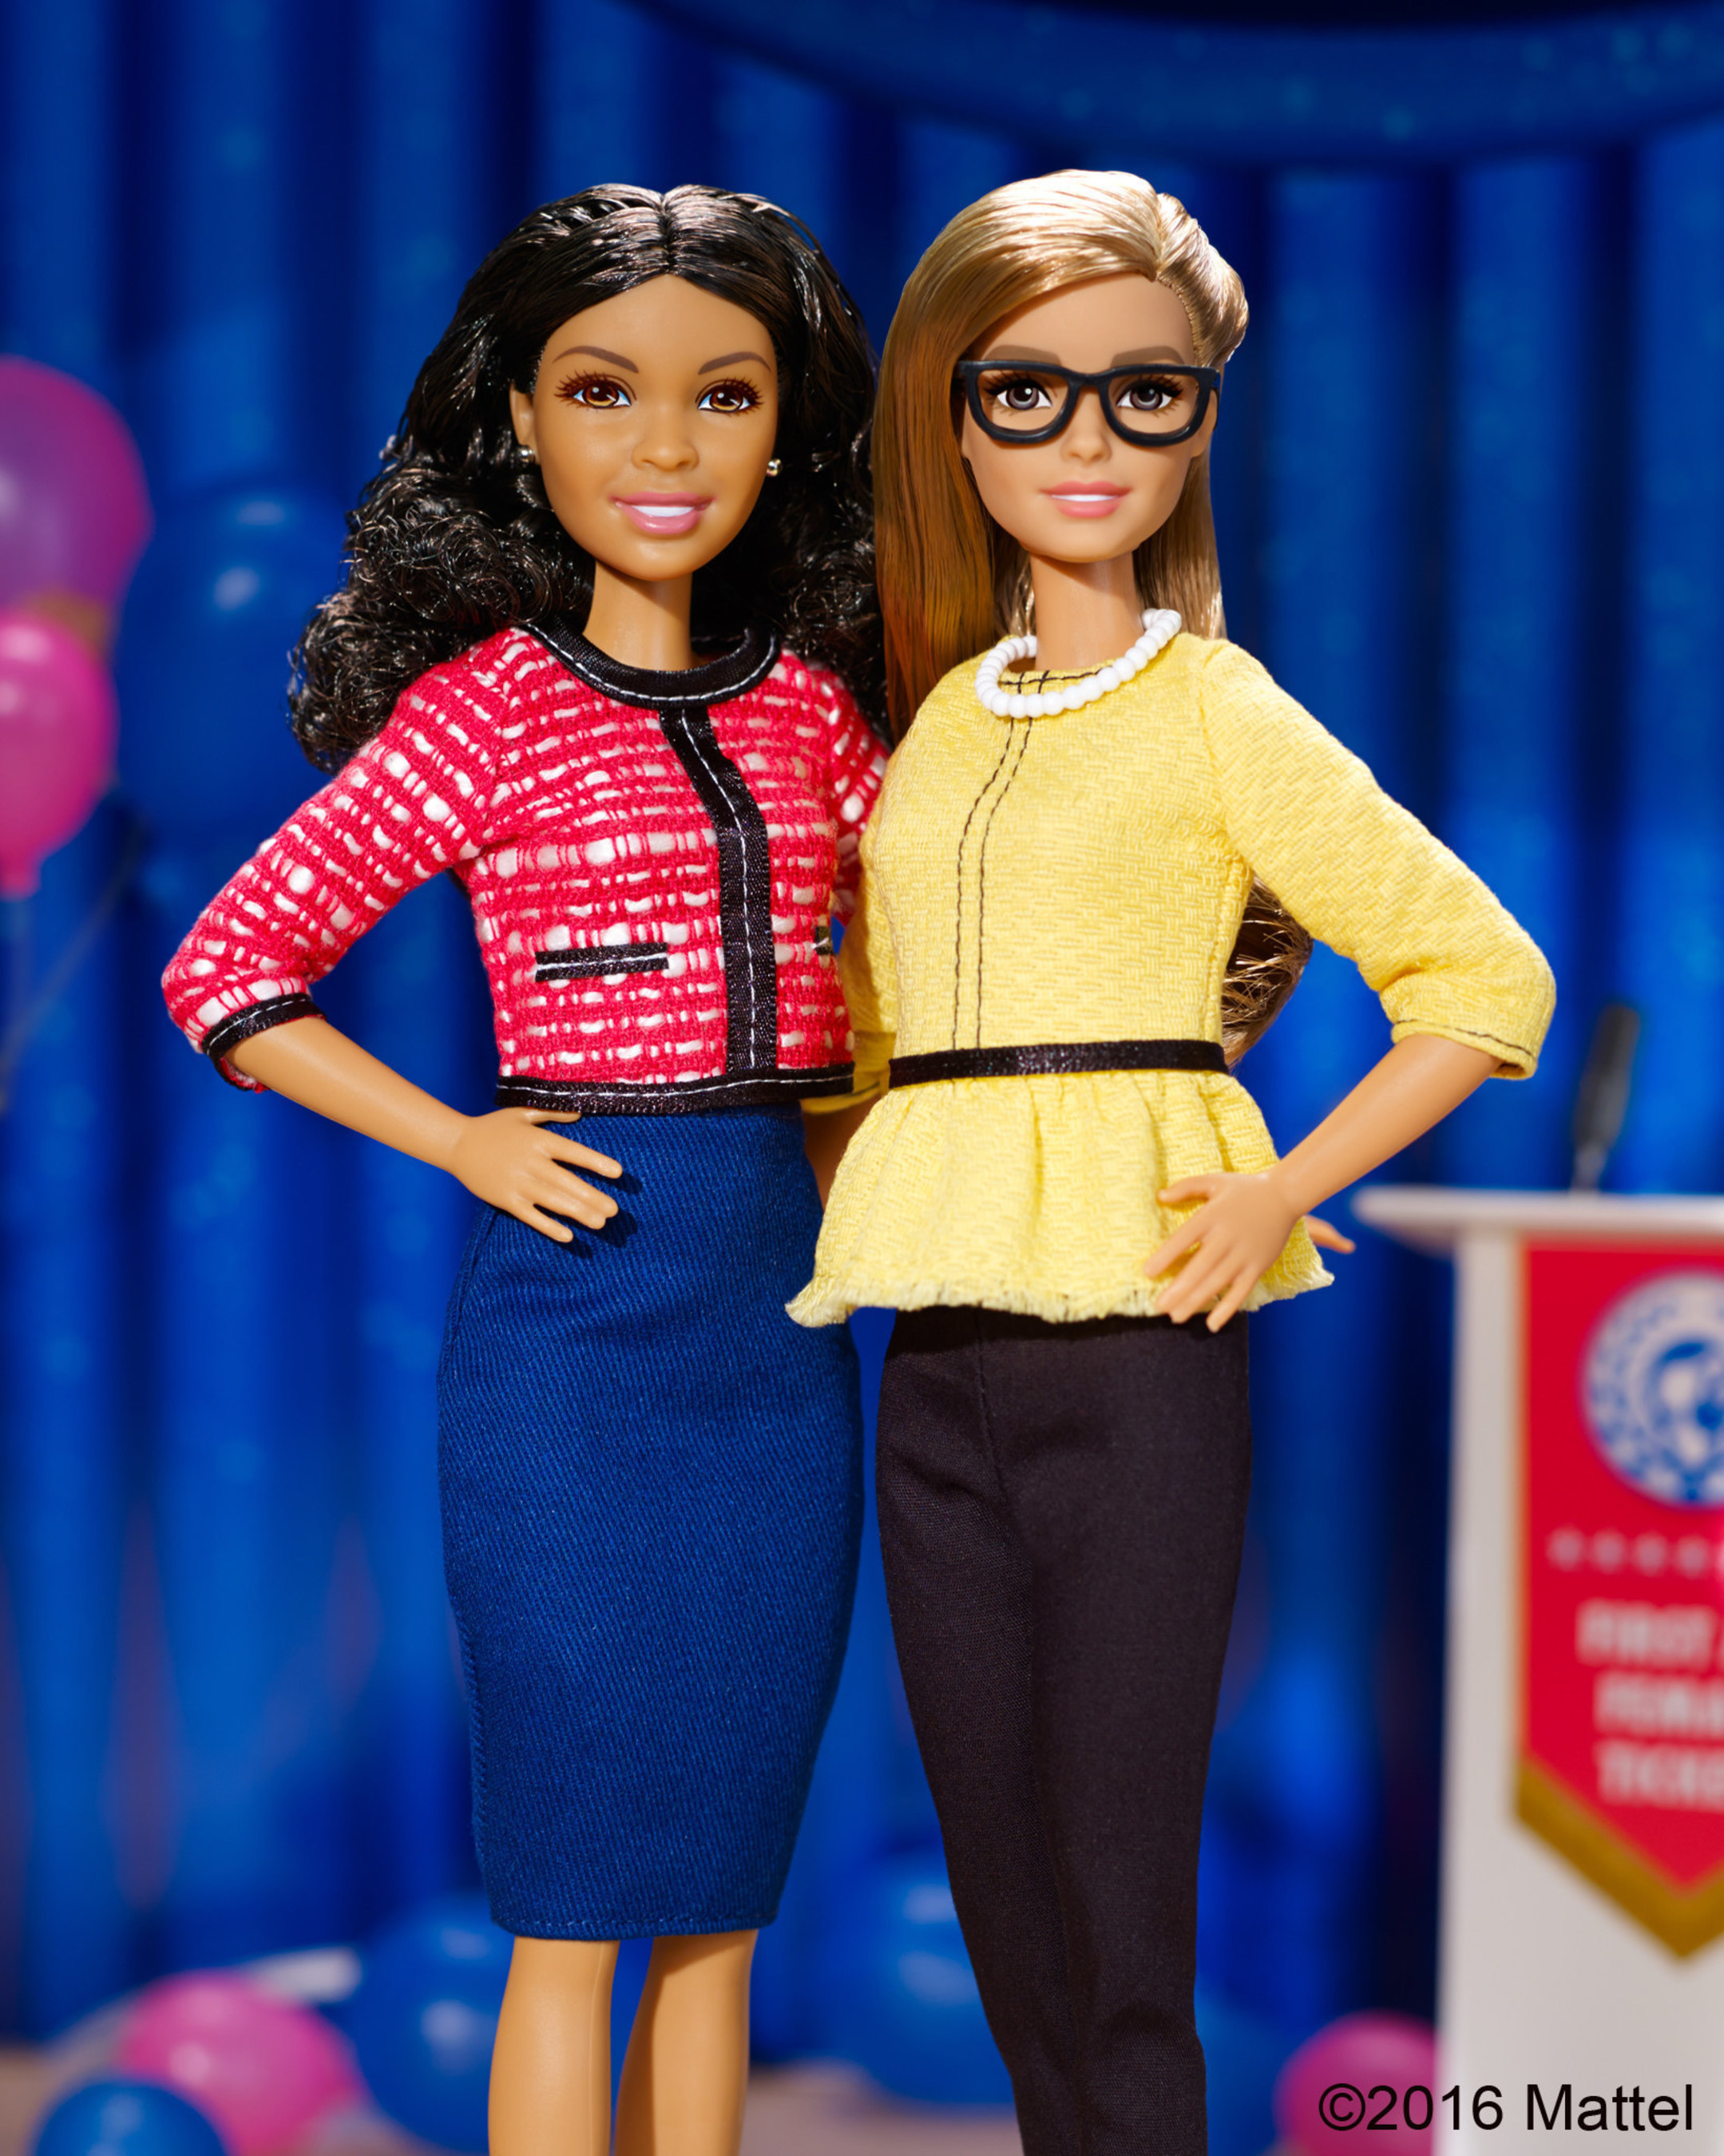 To inspire girls to become leaders, Barbie(R) is introducing new President and Vice President Barbie(R) dolls, because when a girl plays with Barbie she imagines everything she can become. The dolls represent Barbie's first all-female ticket and are part of the careers line, which aims to expose girls to inspiring careers and empowered roles.